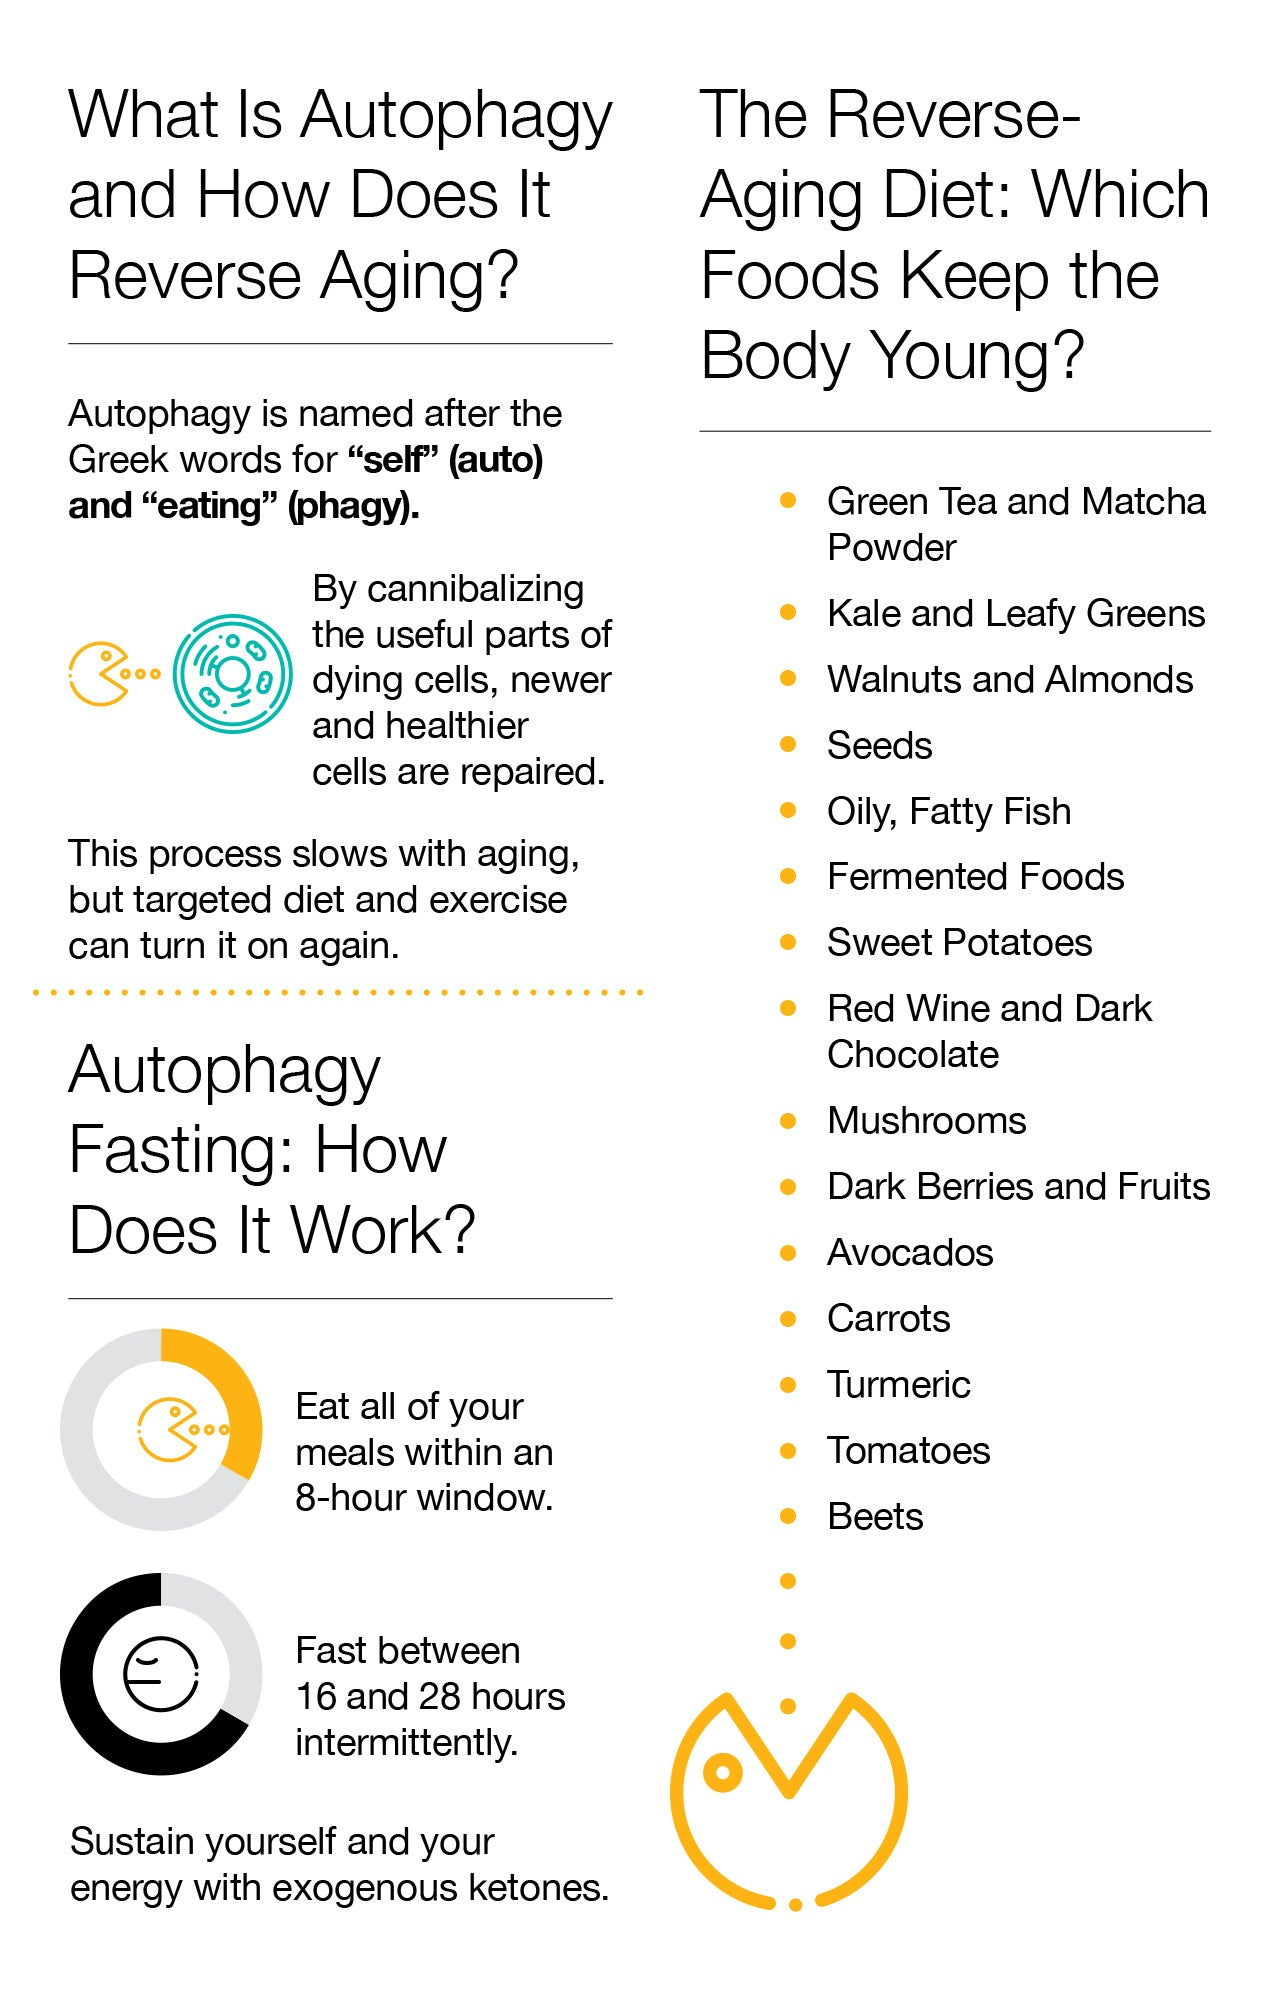 What Is Autophagy and How Does It Reverse Aging